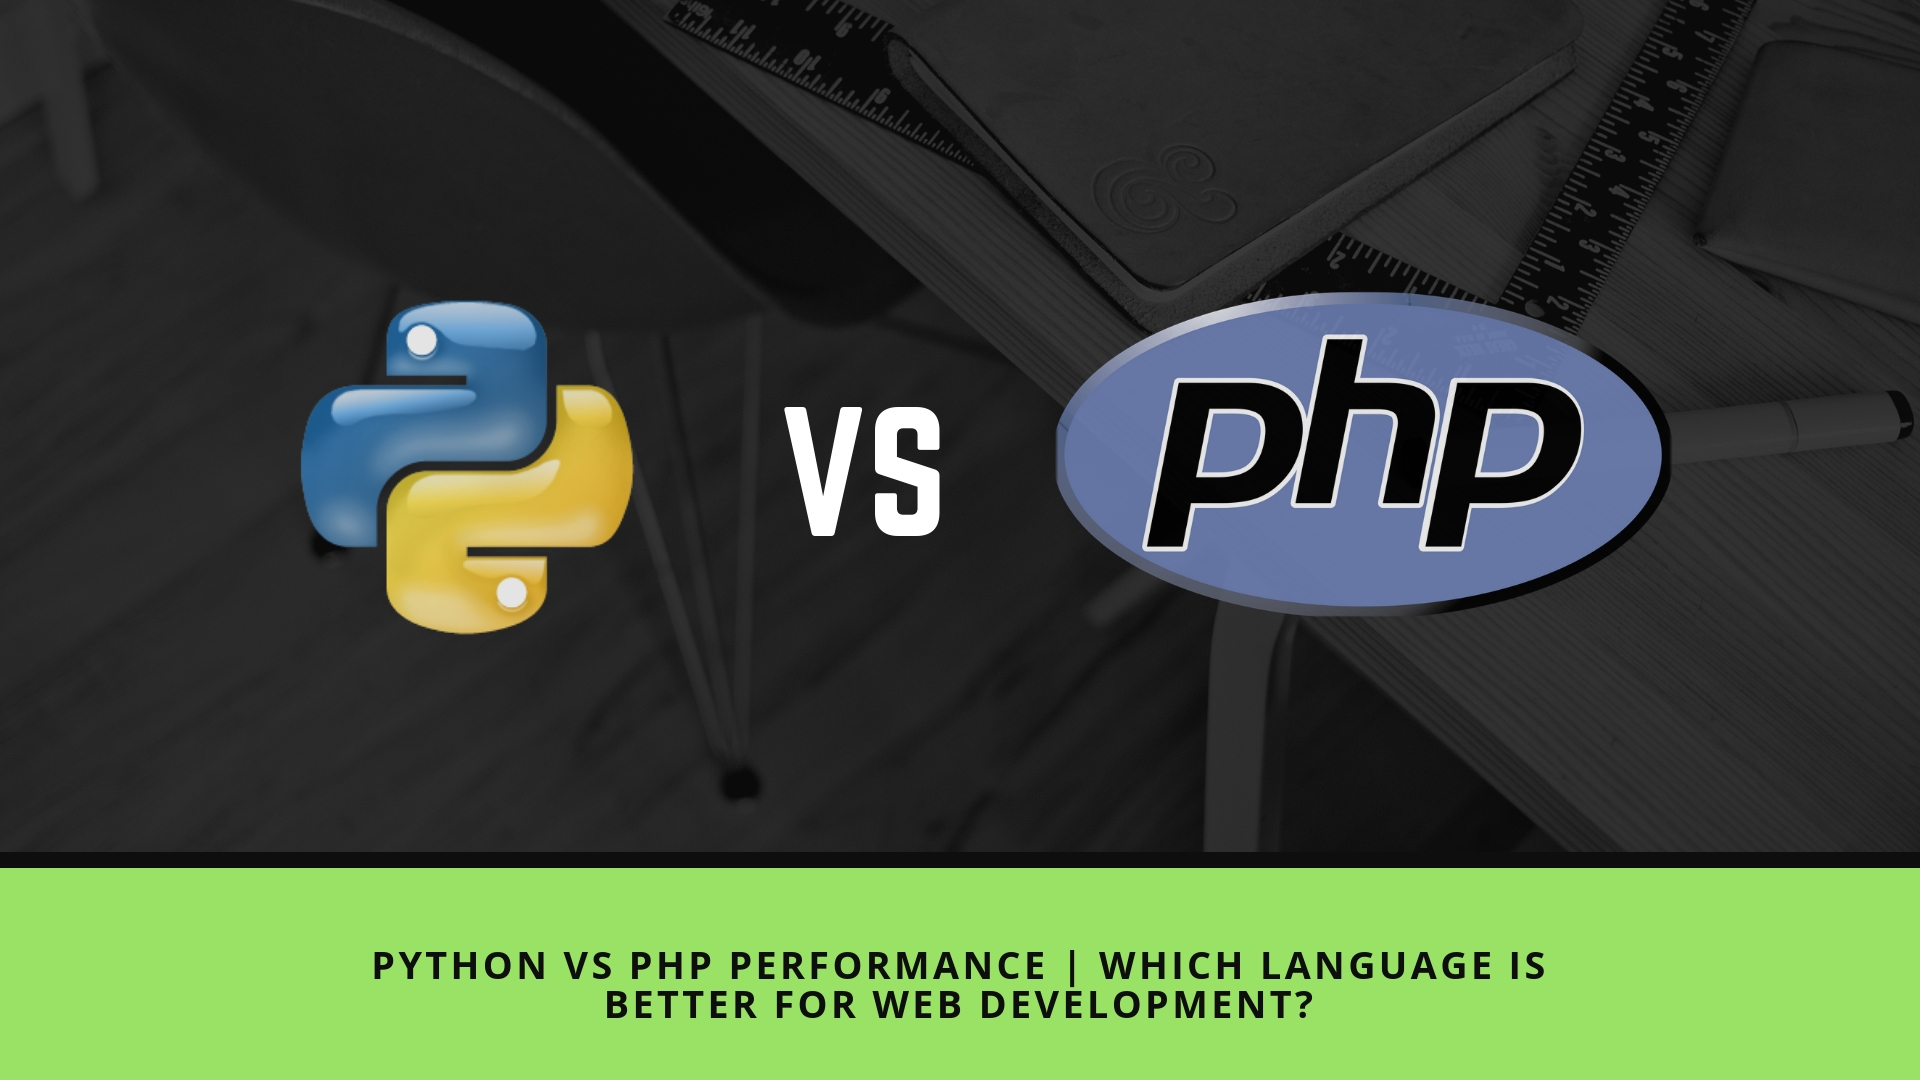 Python vs PHP performance | Which language is better for web development?